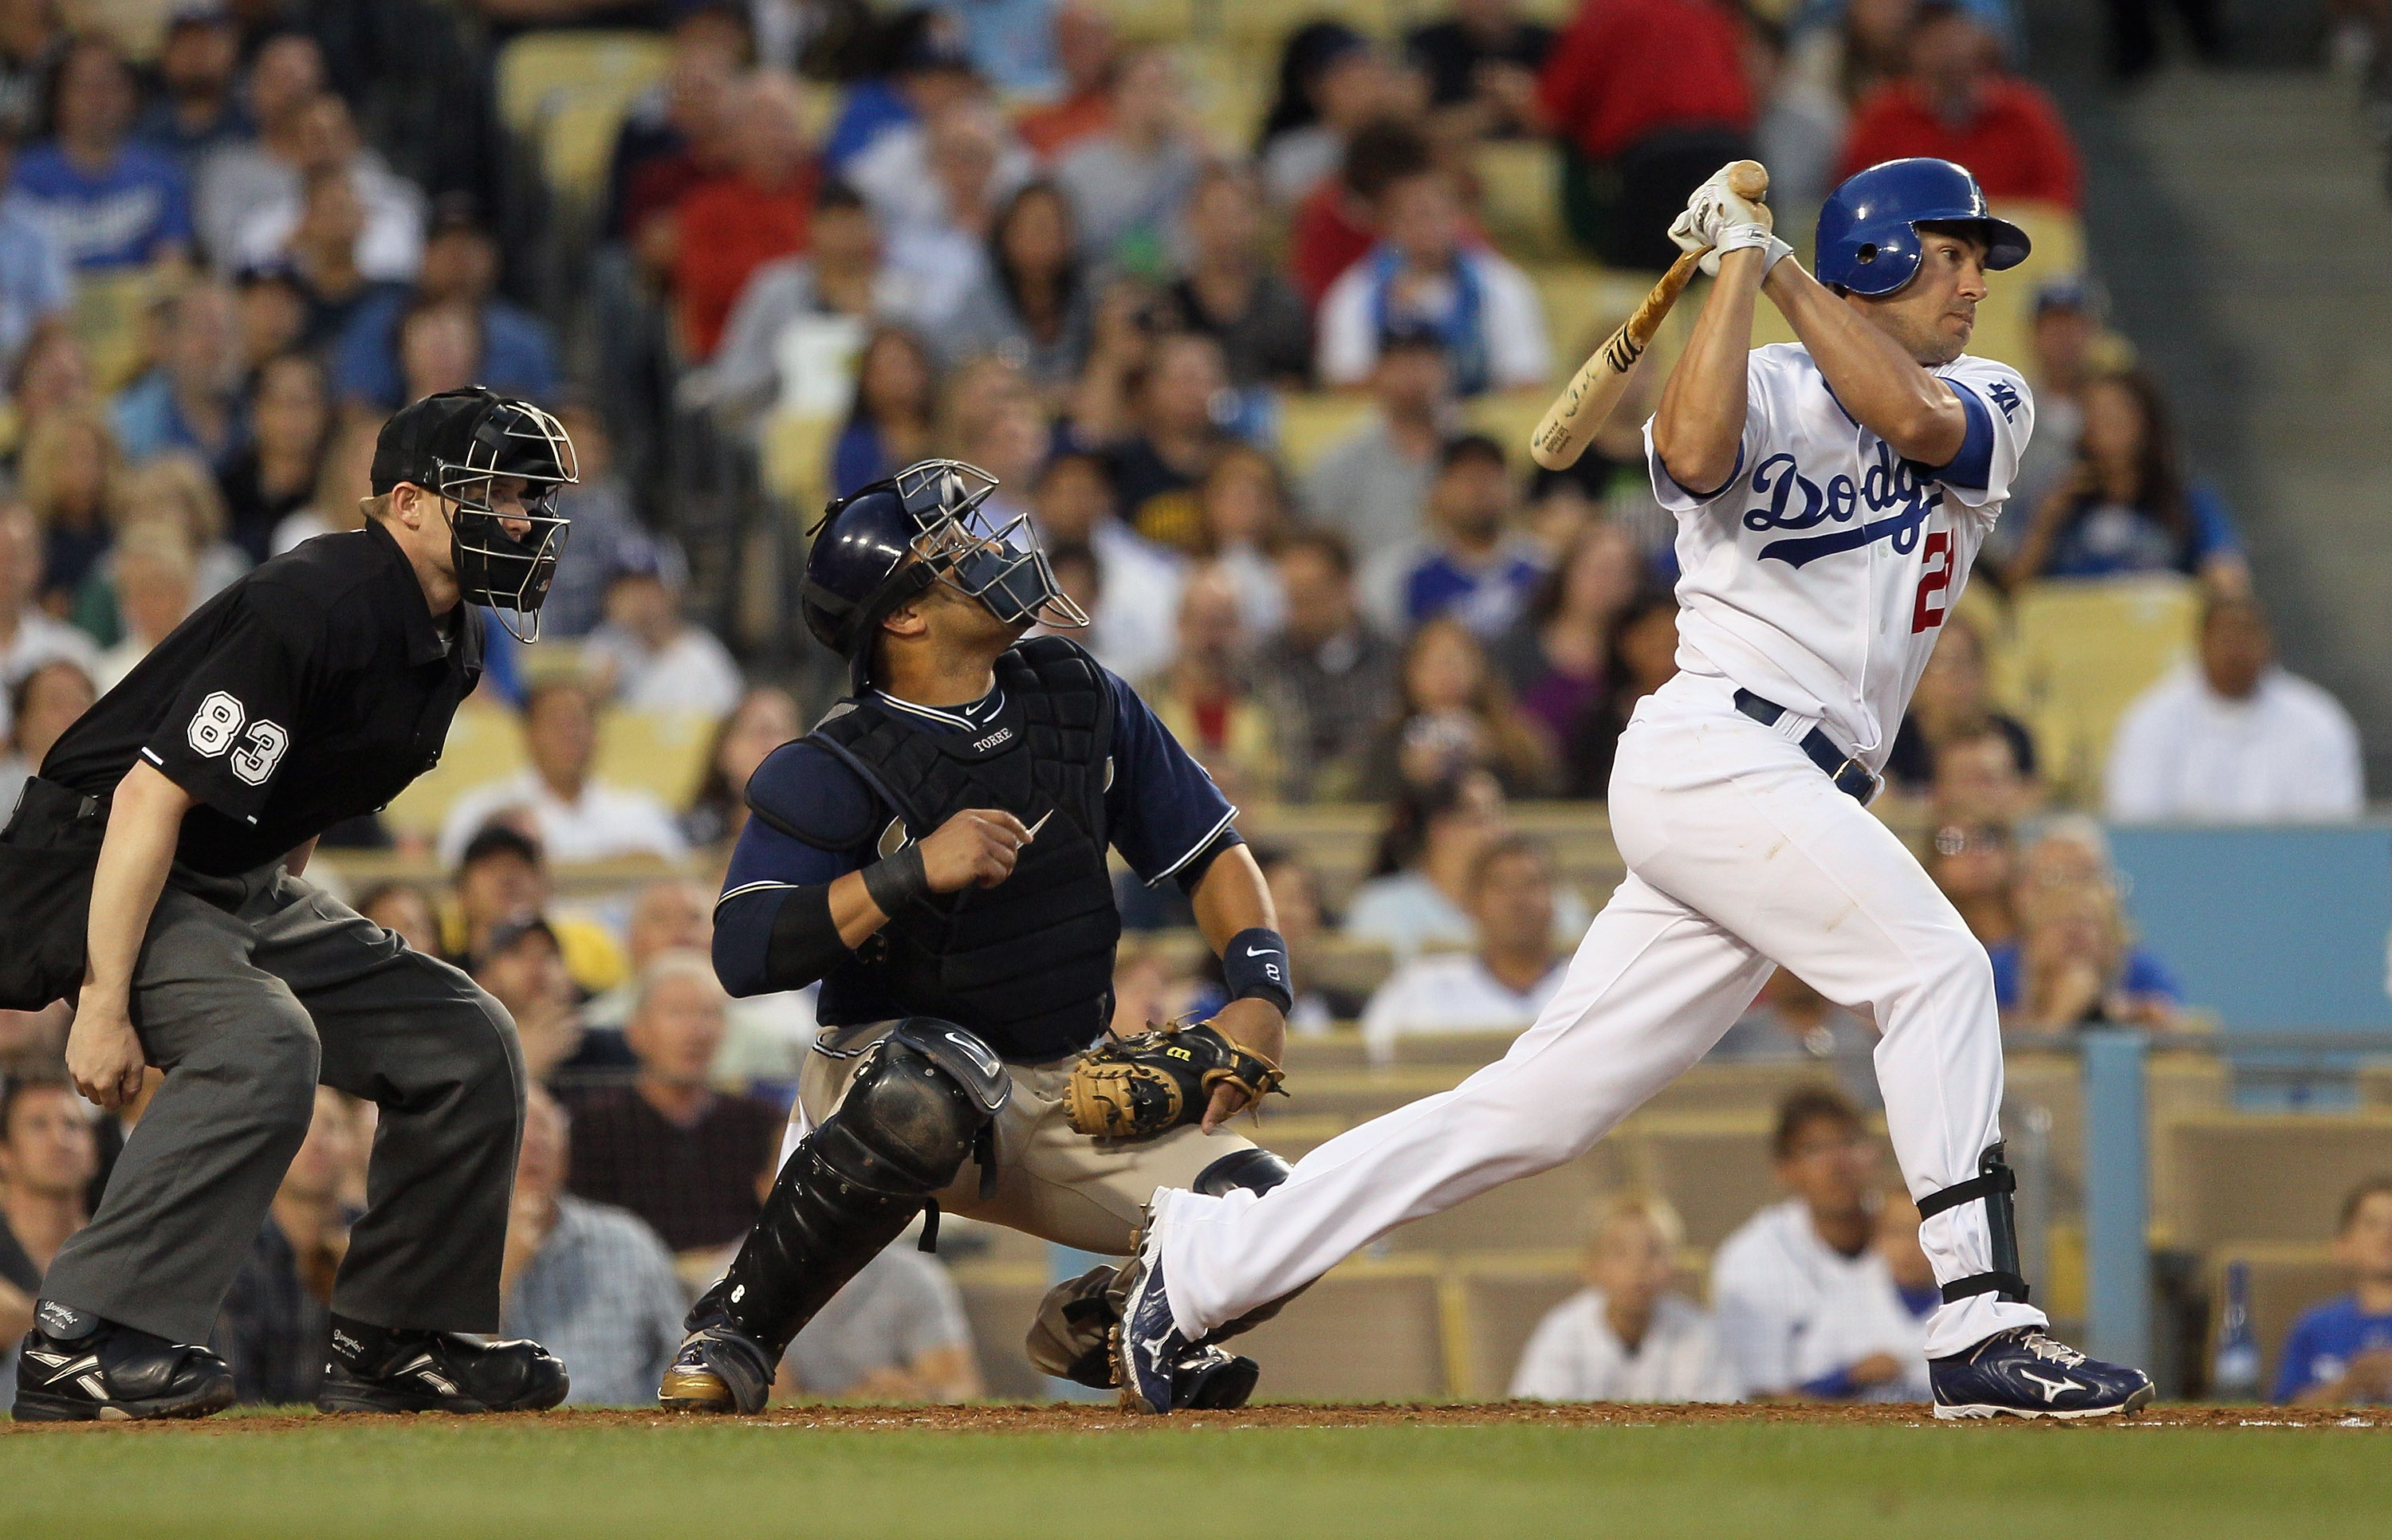 LOS ANGELES, CA - AUGUST 04:  Scott Podsednik #21 of the Los Angeles Dodgers plays in the game against the San Diego Padres at Dodger Stadium on August 4, 2010 in Los Angeles, California.  (Photo by Jeff Gross/Getty Images)